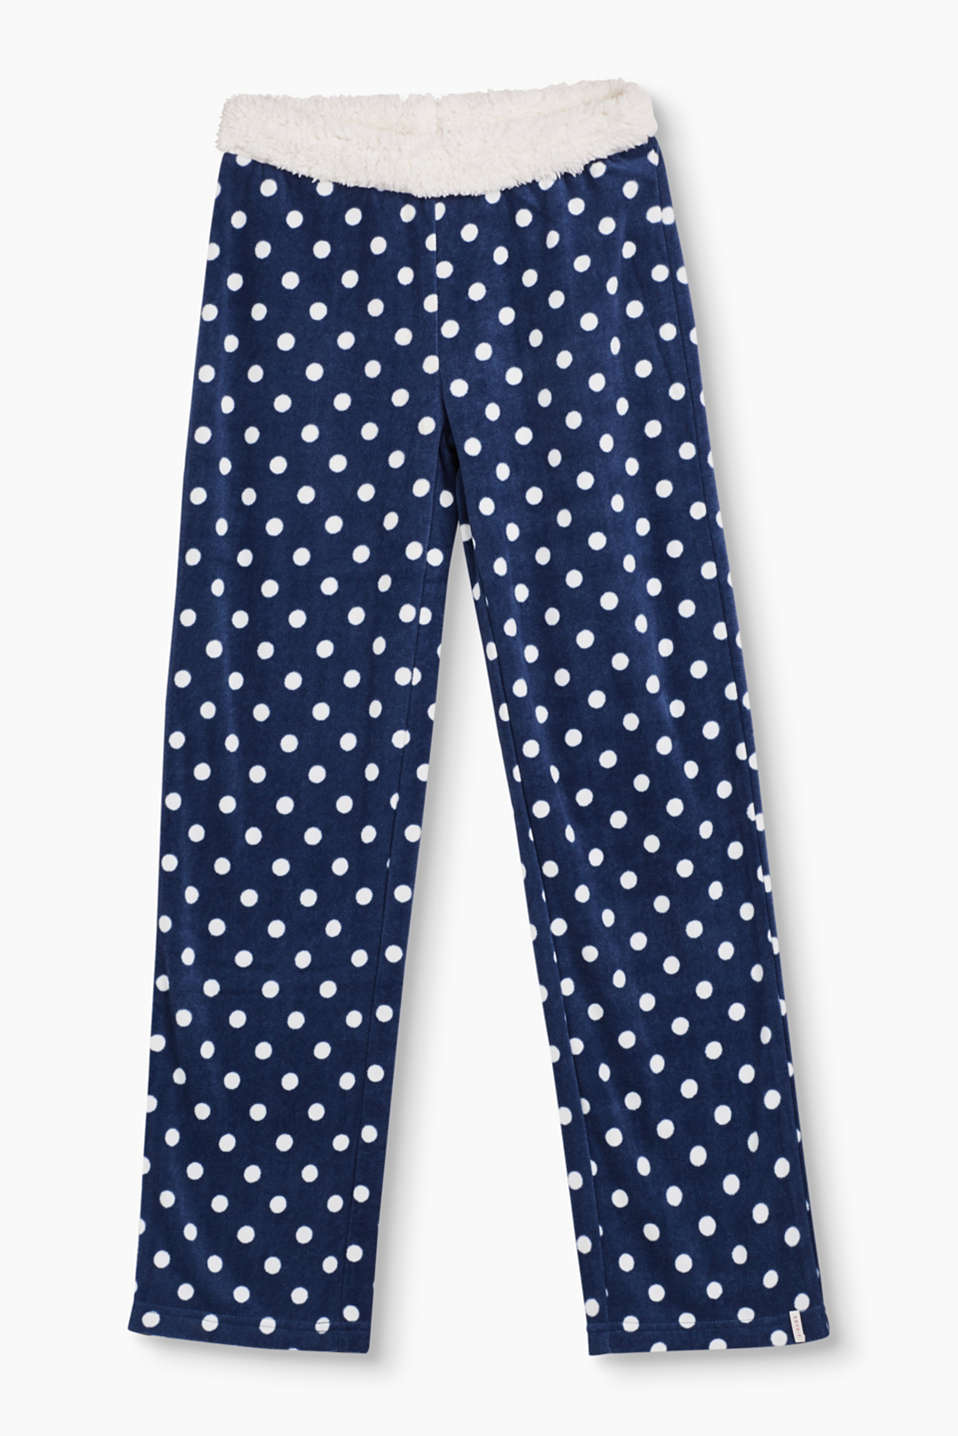 Soft, insulating and sweet to look at! Pyjama bottoms in polka dot fleece with an elasticated fake fur waistband.